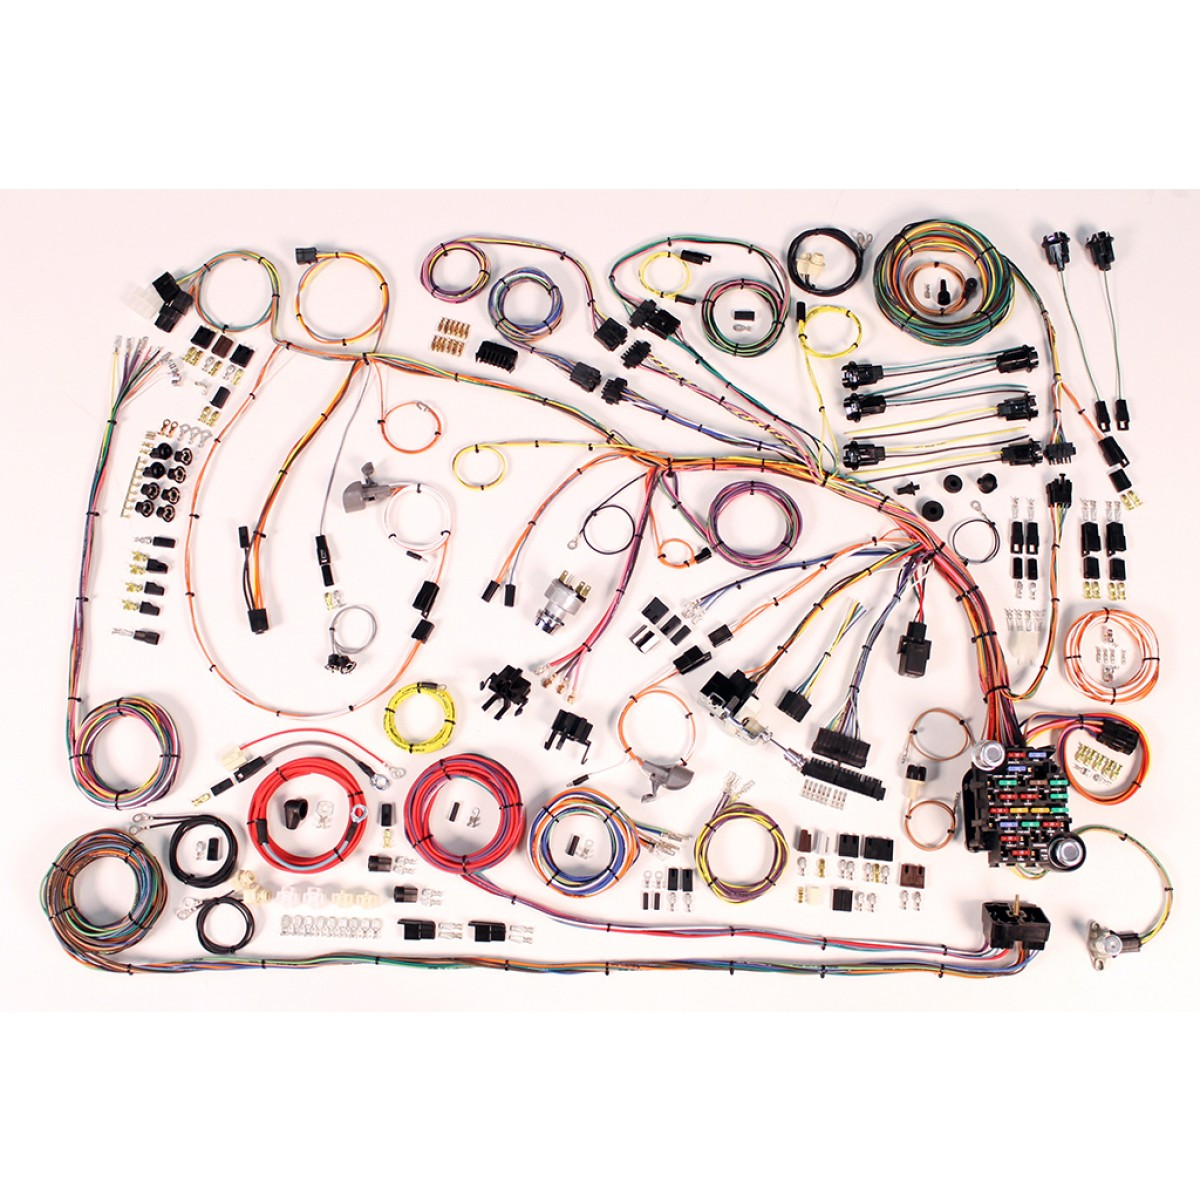 Complete Wiring Harness Kit - 1966-1968 Impala Part# 510372 on